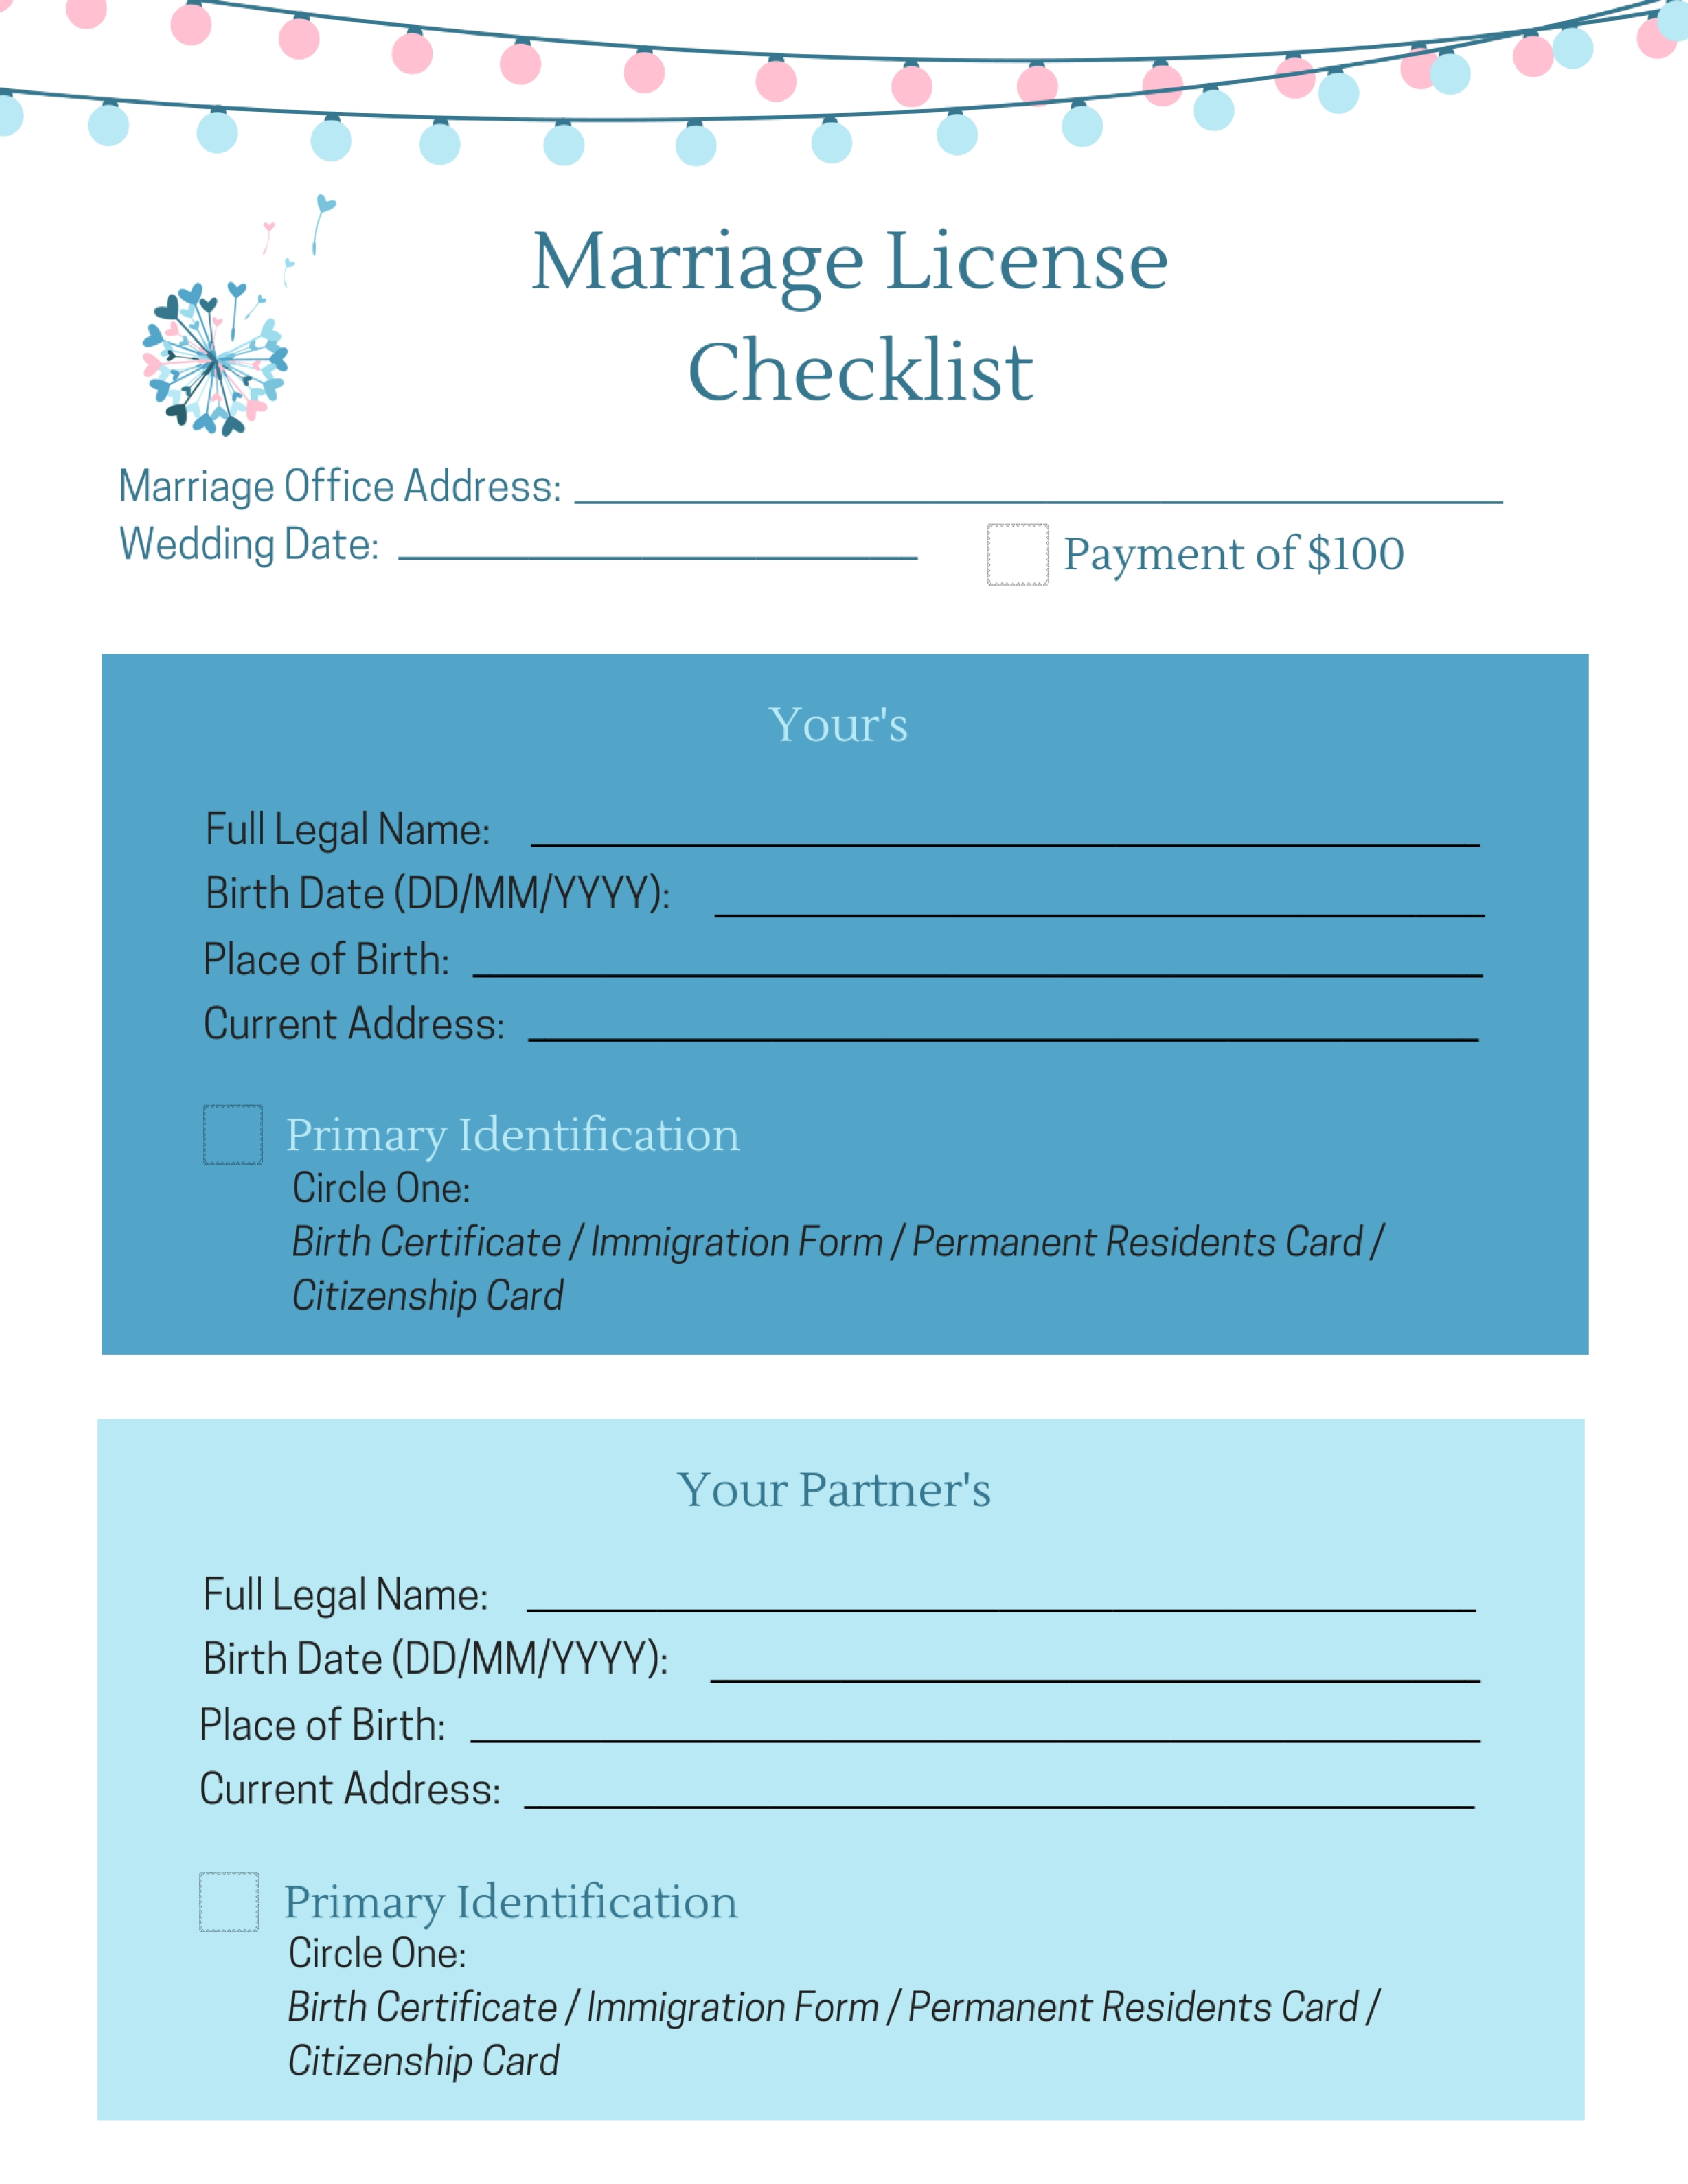 Marriage License Checklist - A Wish to Wed Society